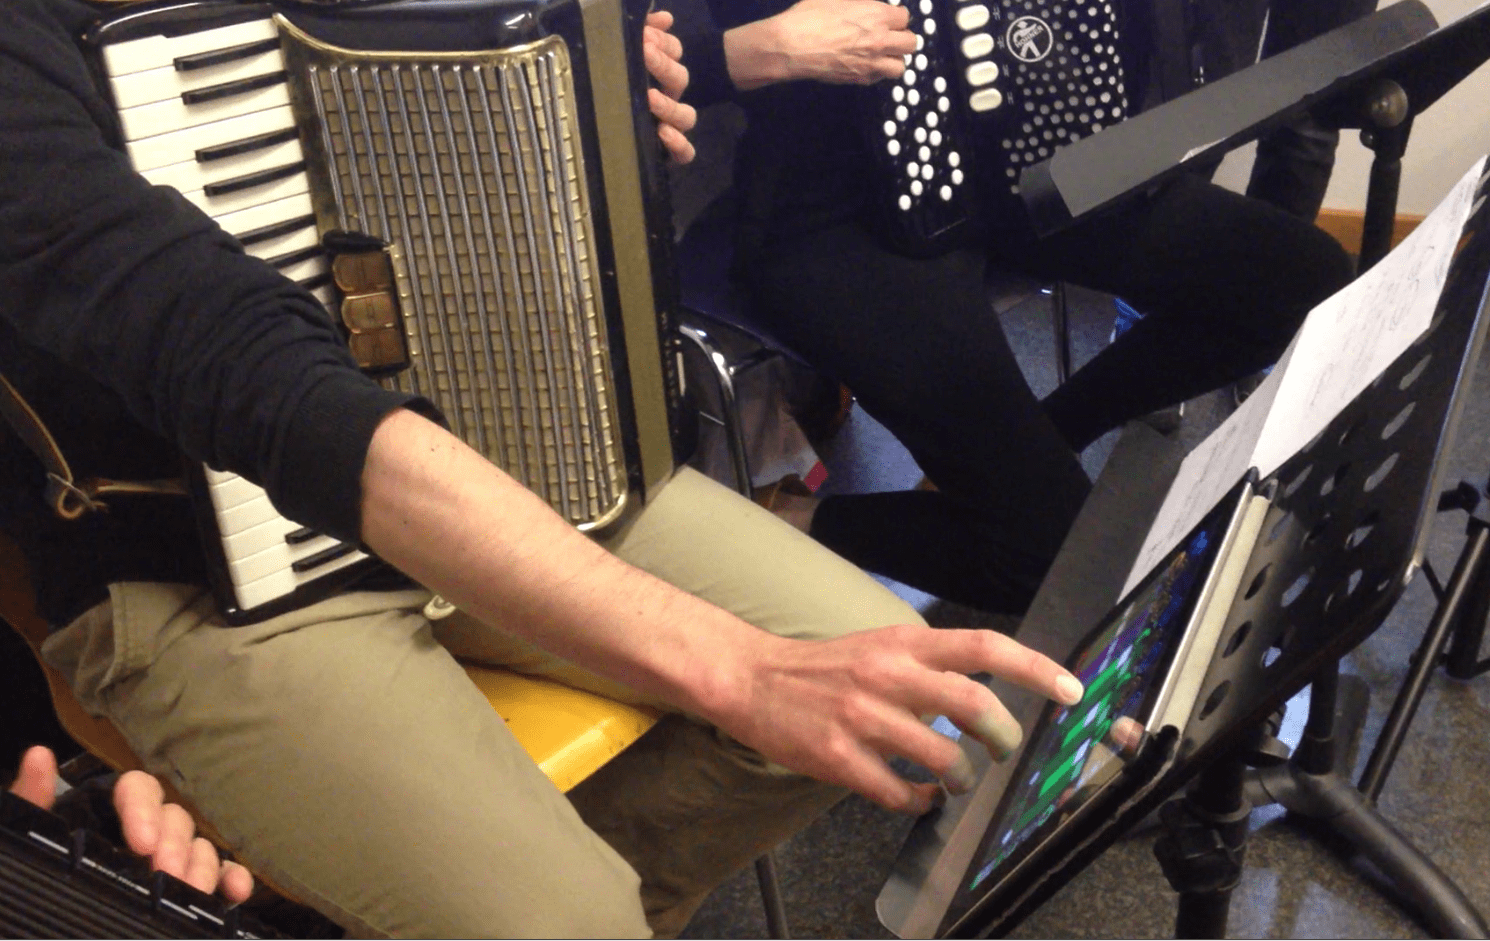 accordéons et ipad